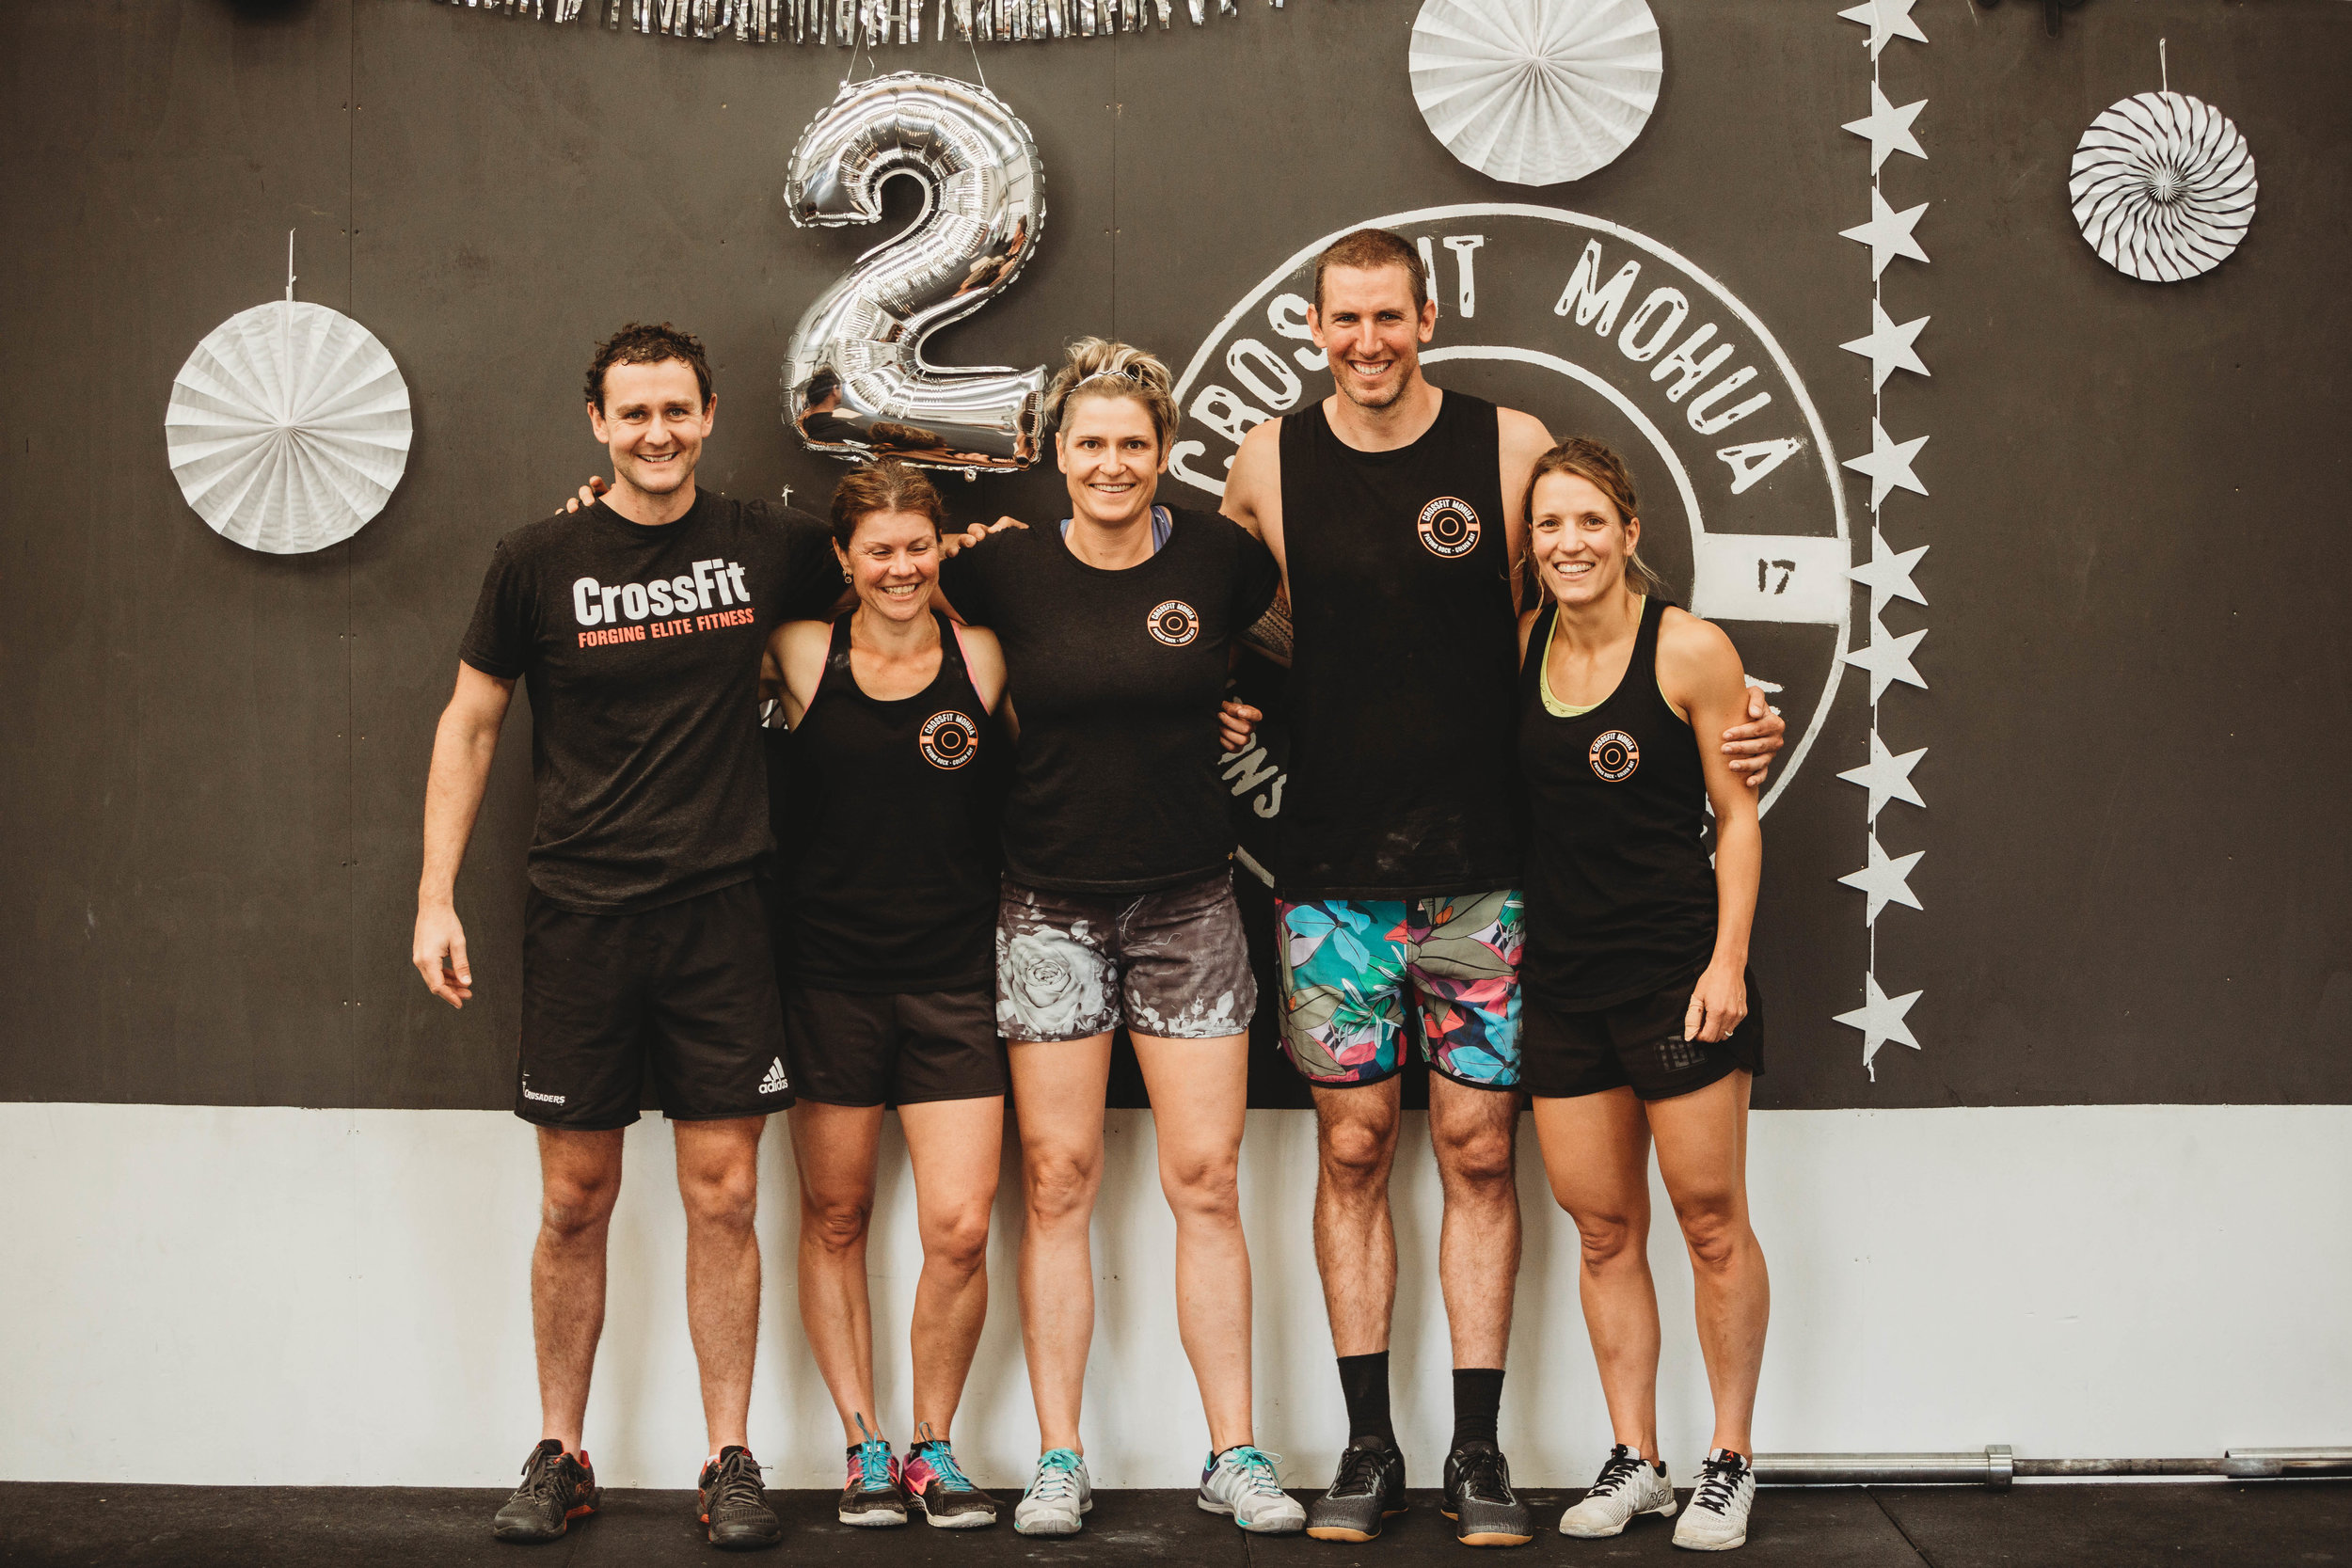 We have grown our team and have some awesome qualified CrossFit coaches, Ben, Shannon, Brad, Nina and Ruth